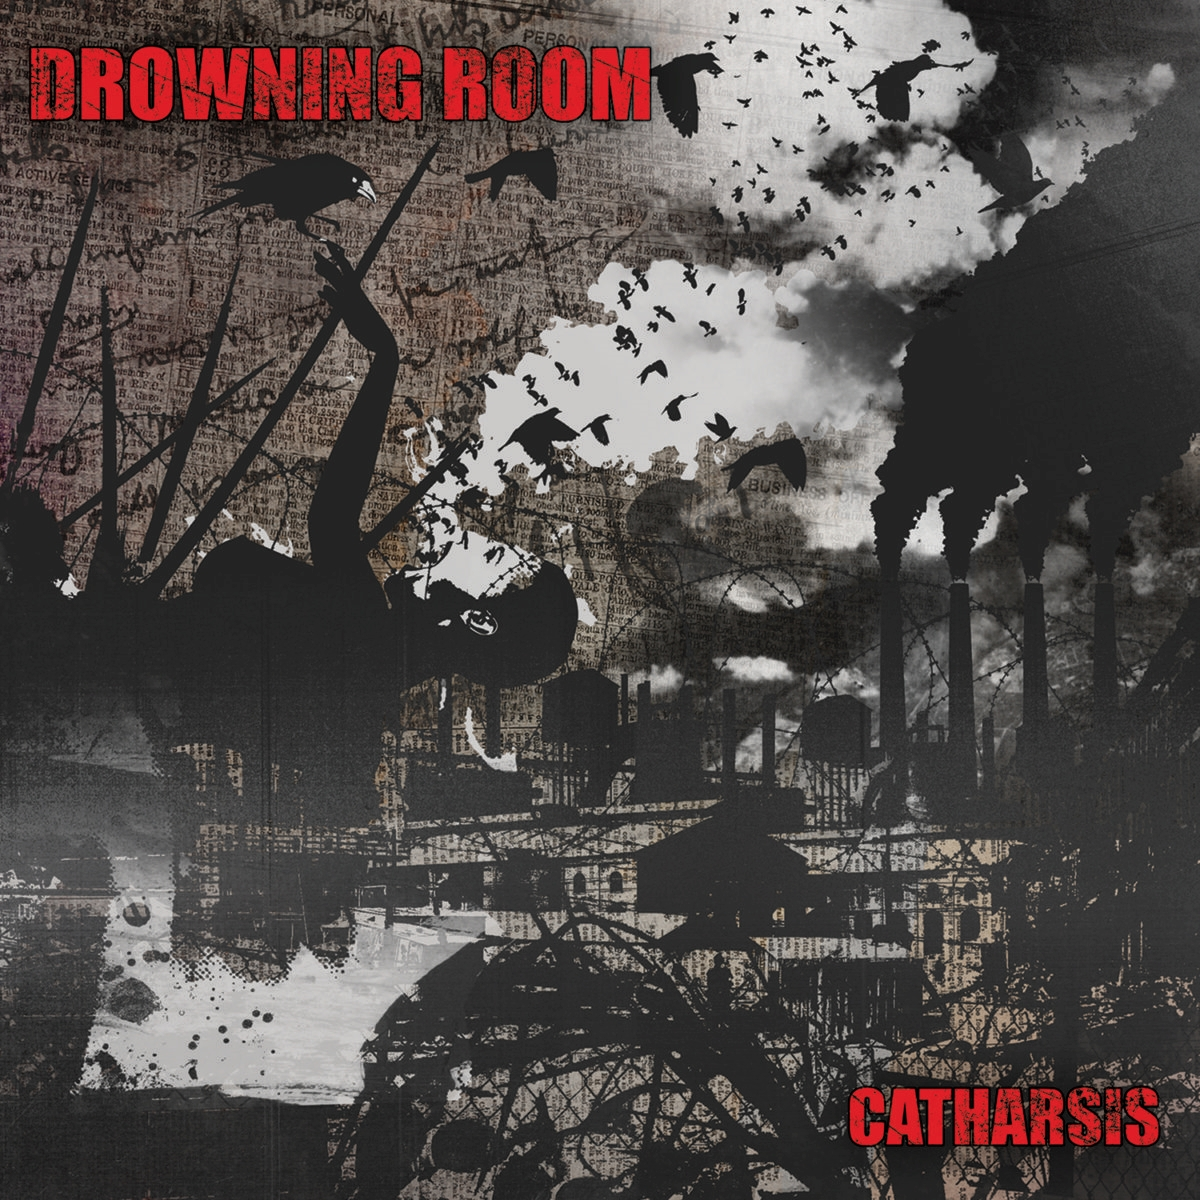 Drowning Room | Catharsis | CD |715875243000